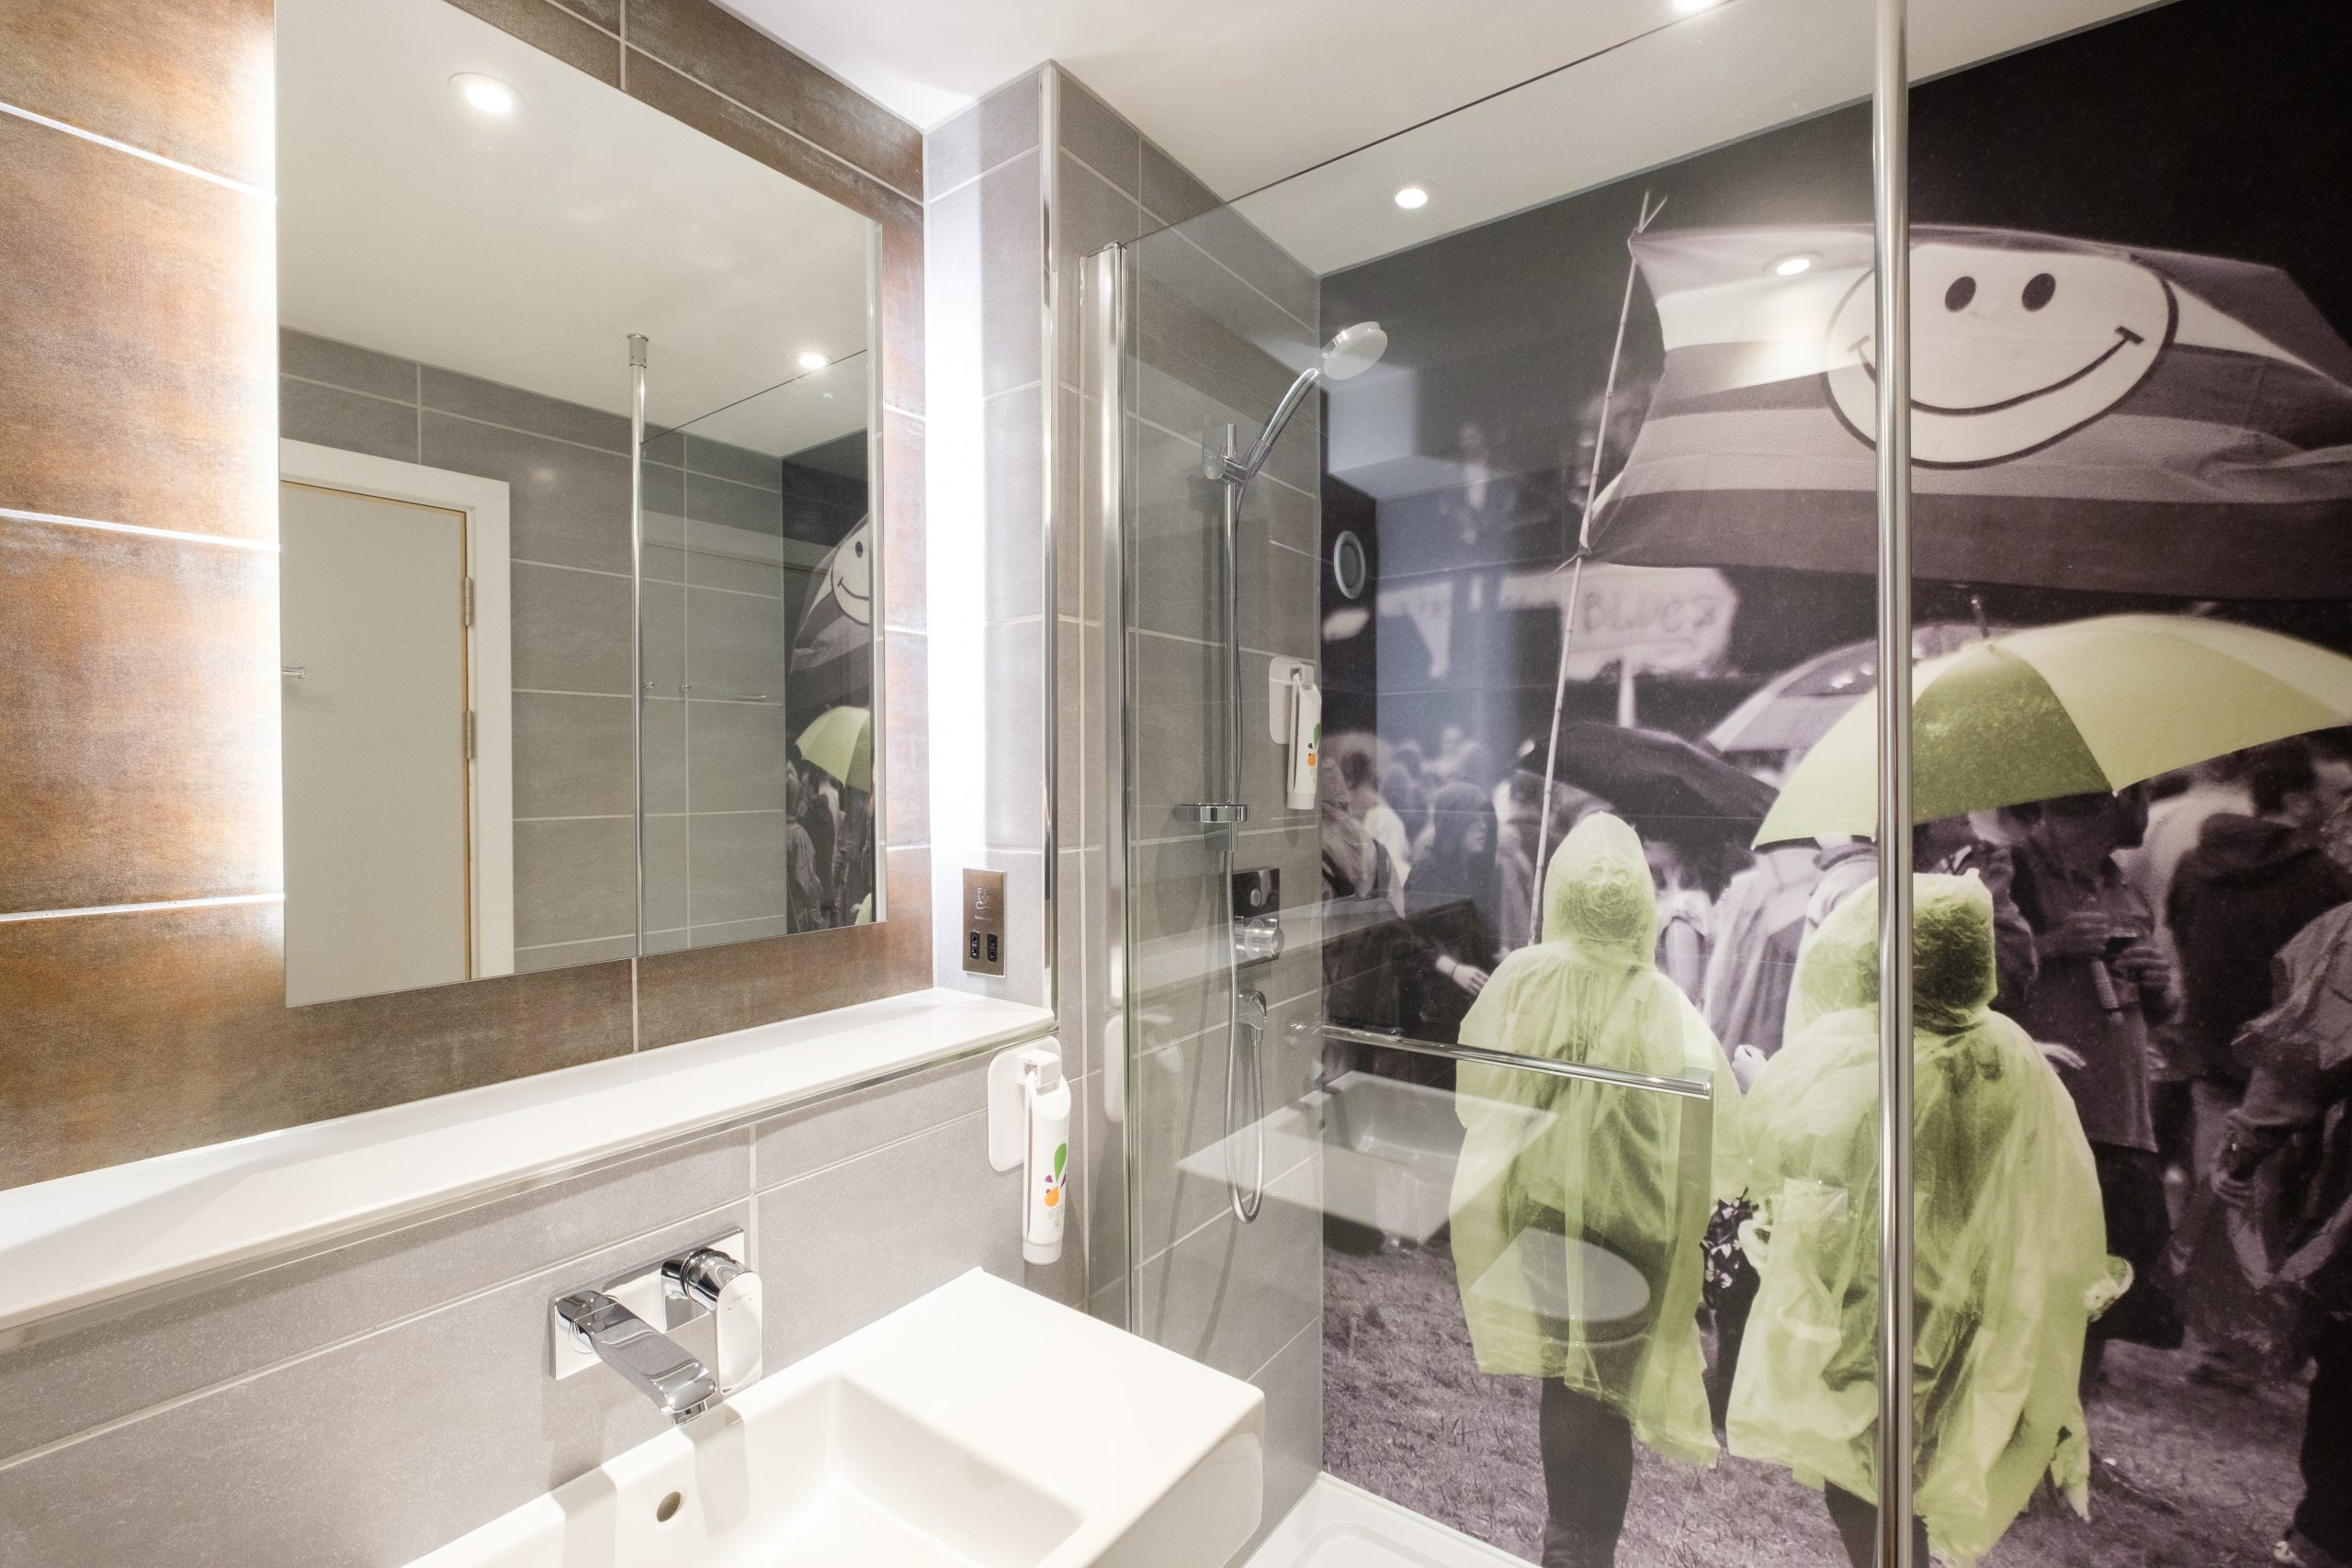 Ibis Styles bathroom - credit Evoke Pictures